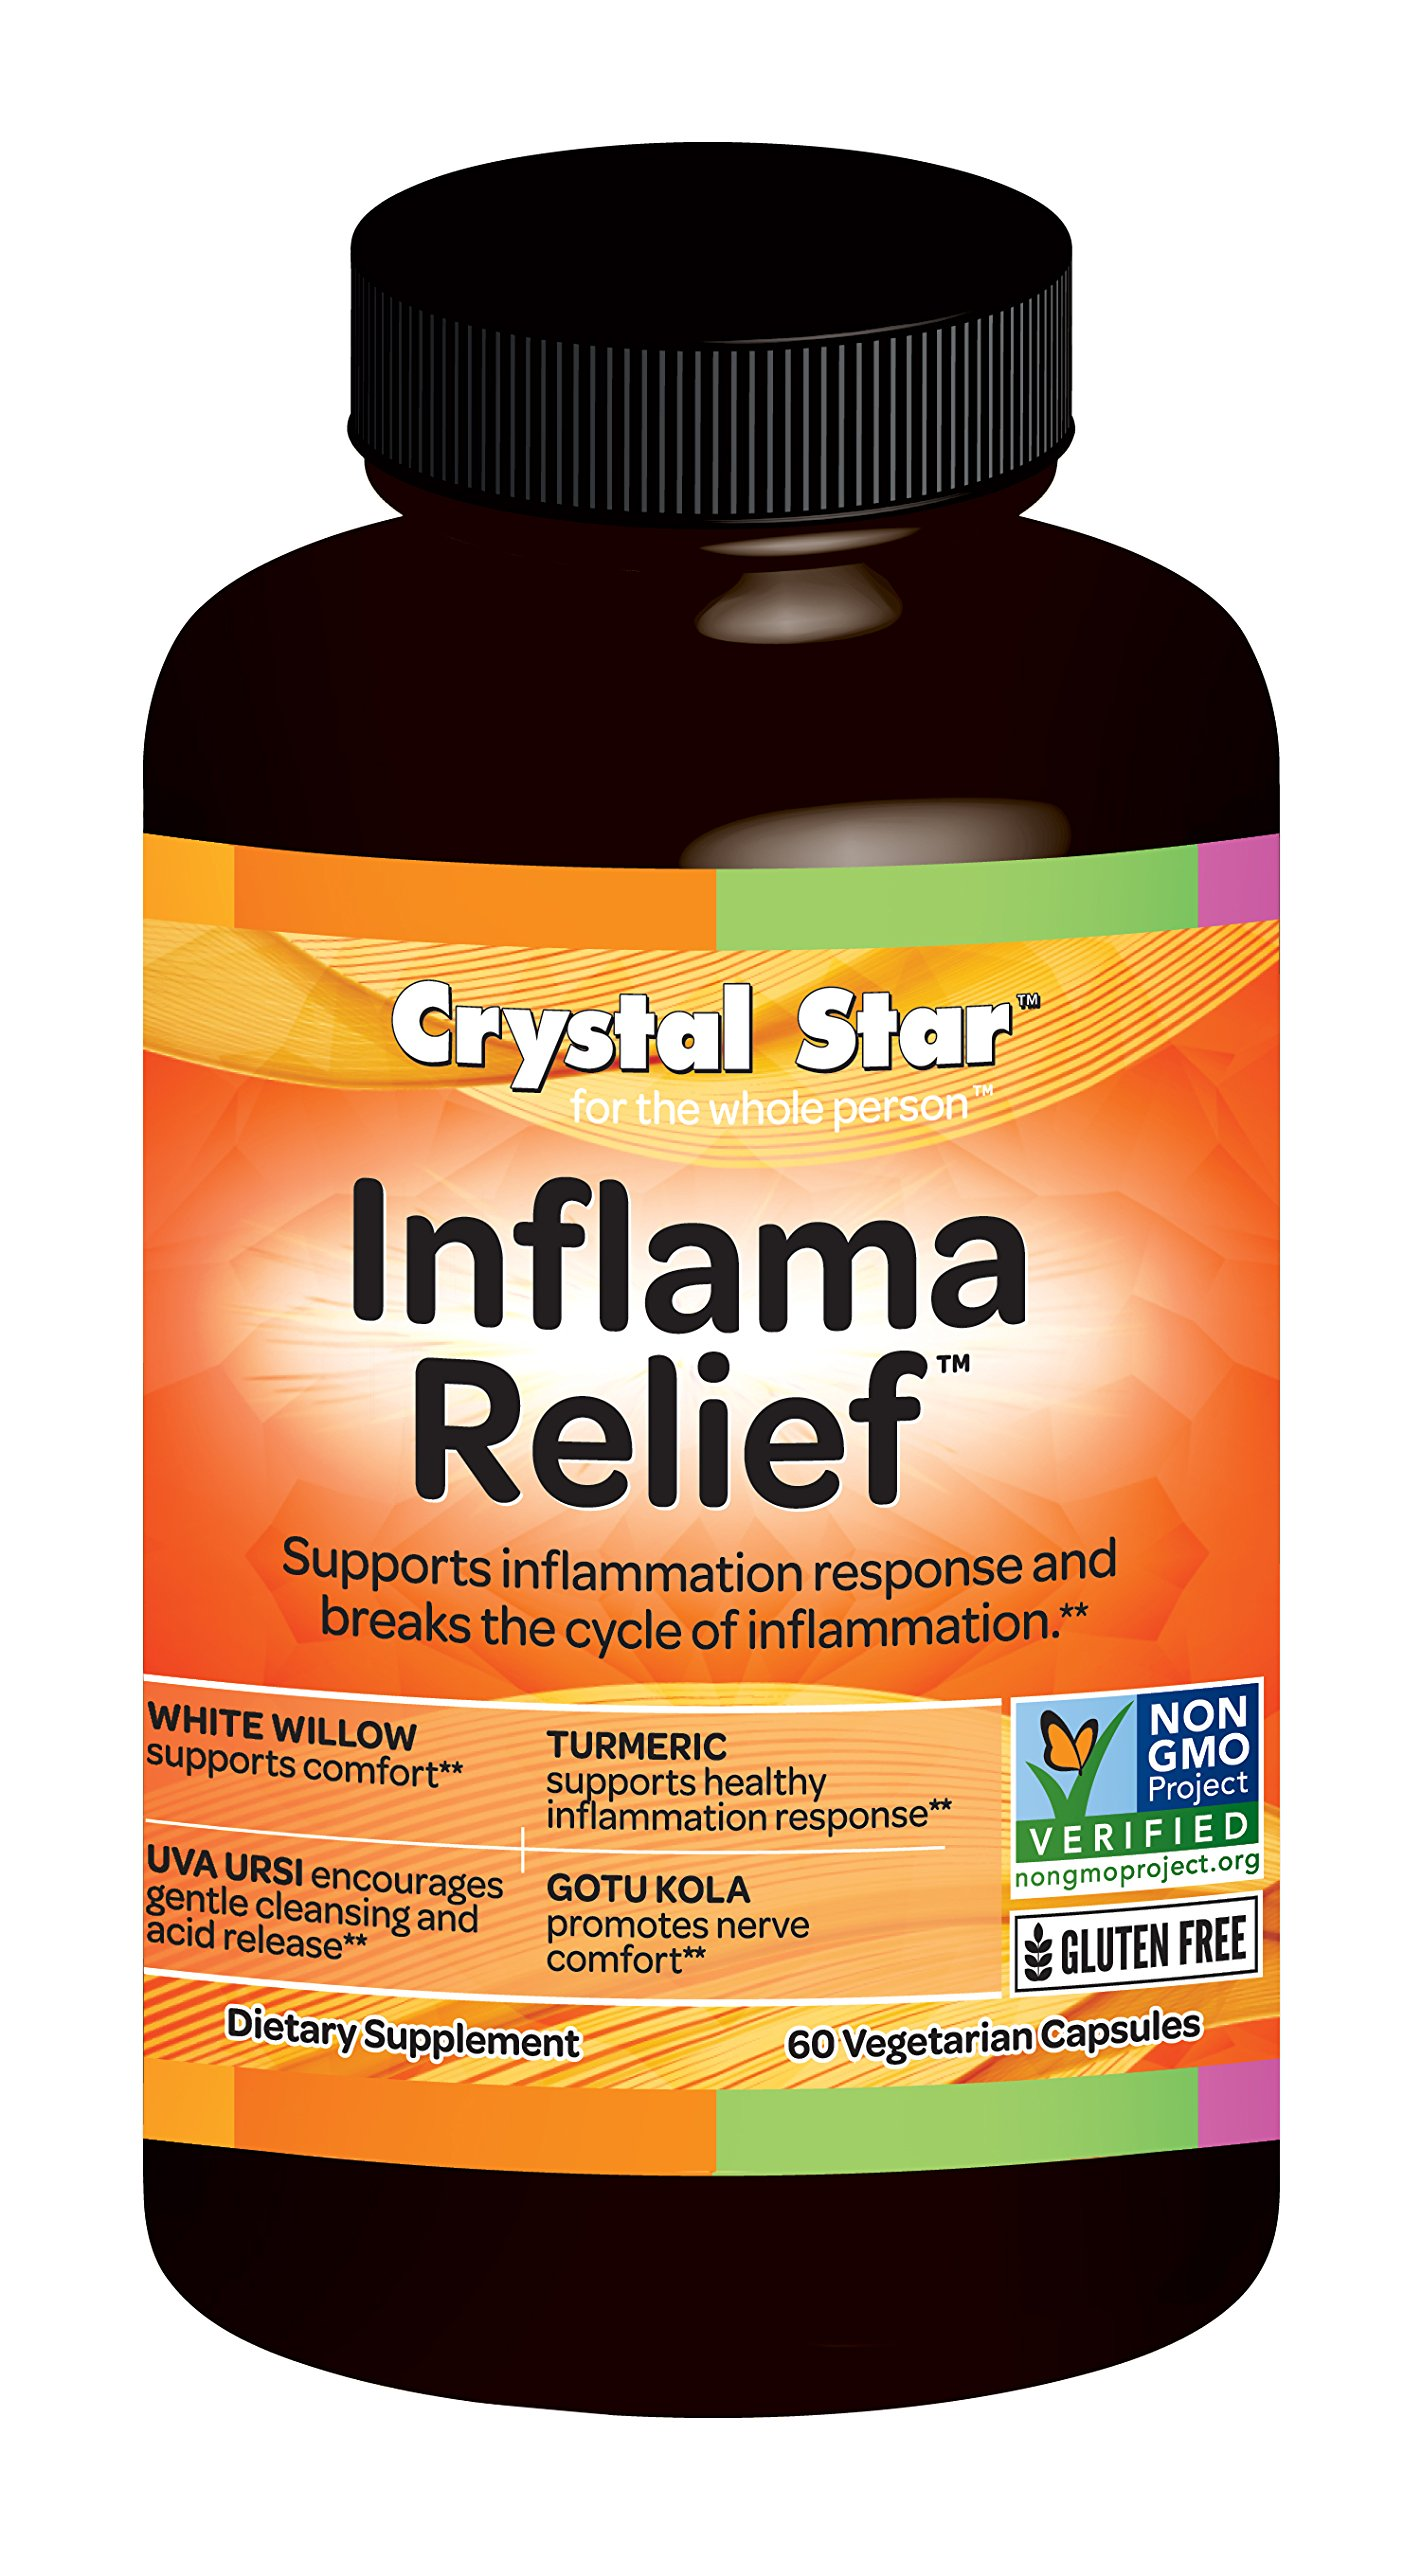 Cheap herbal supplement - Crystal Star Inflama Relief Herbal Supplements 60 Count